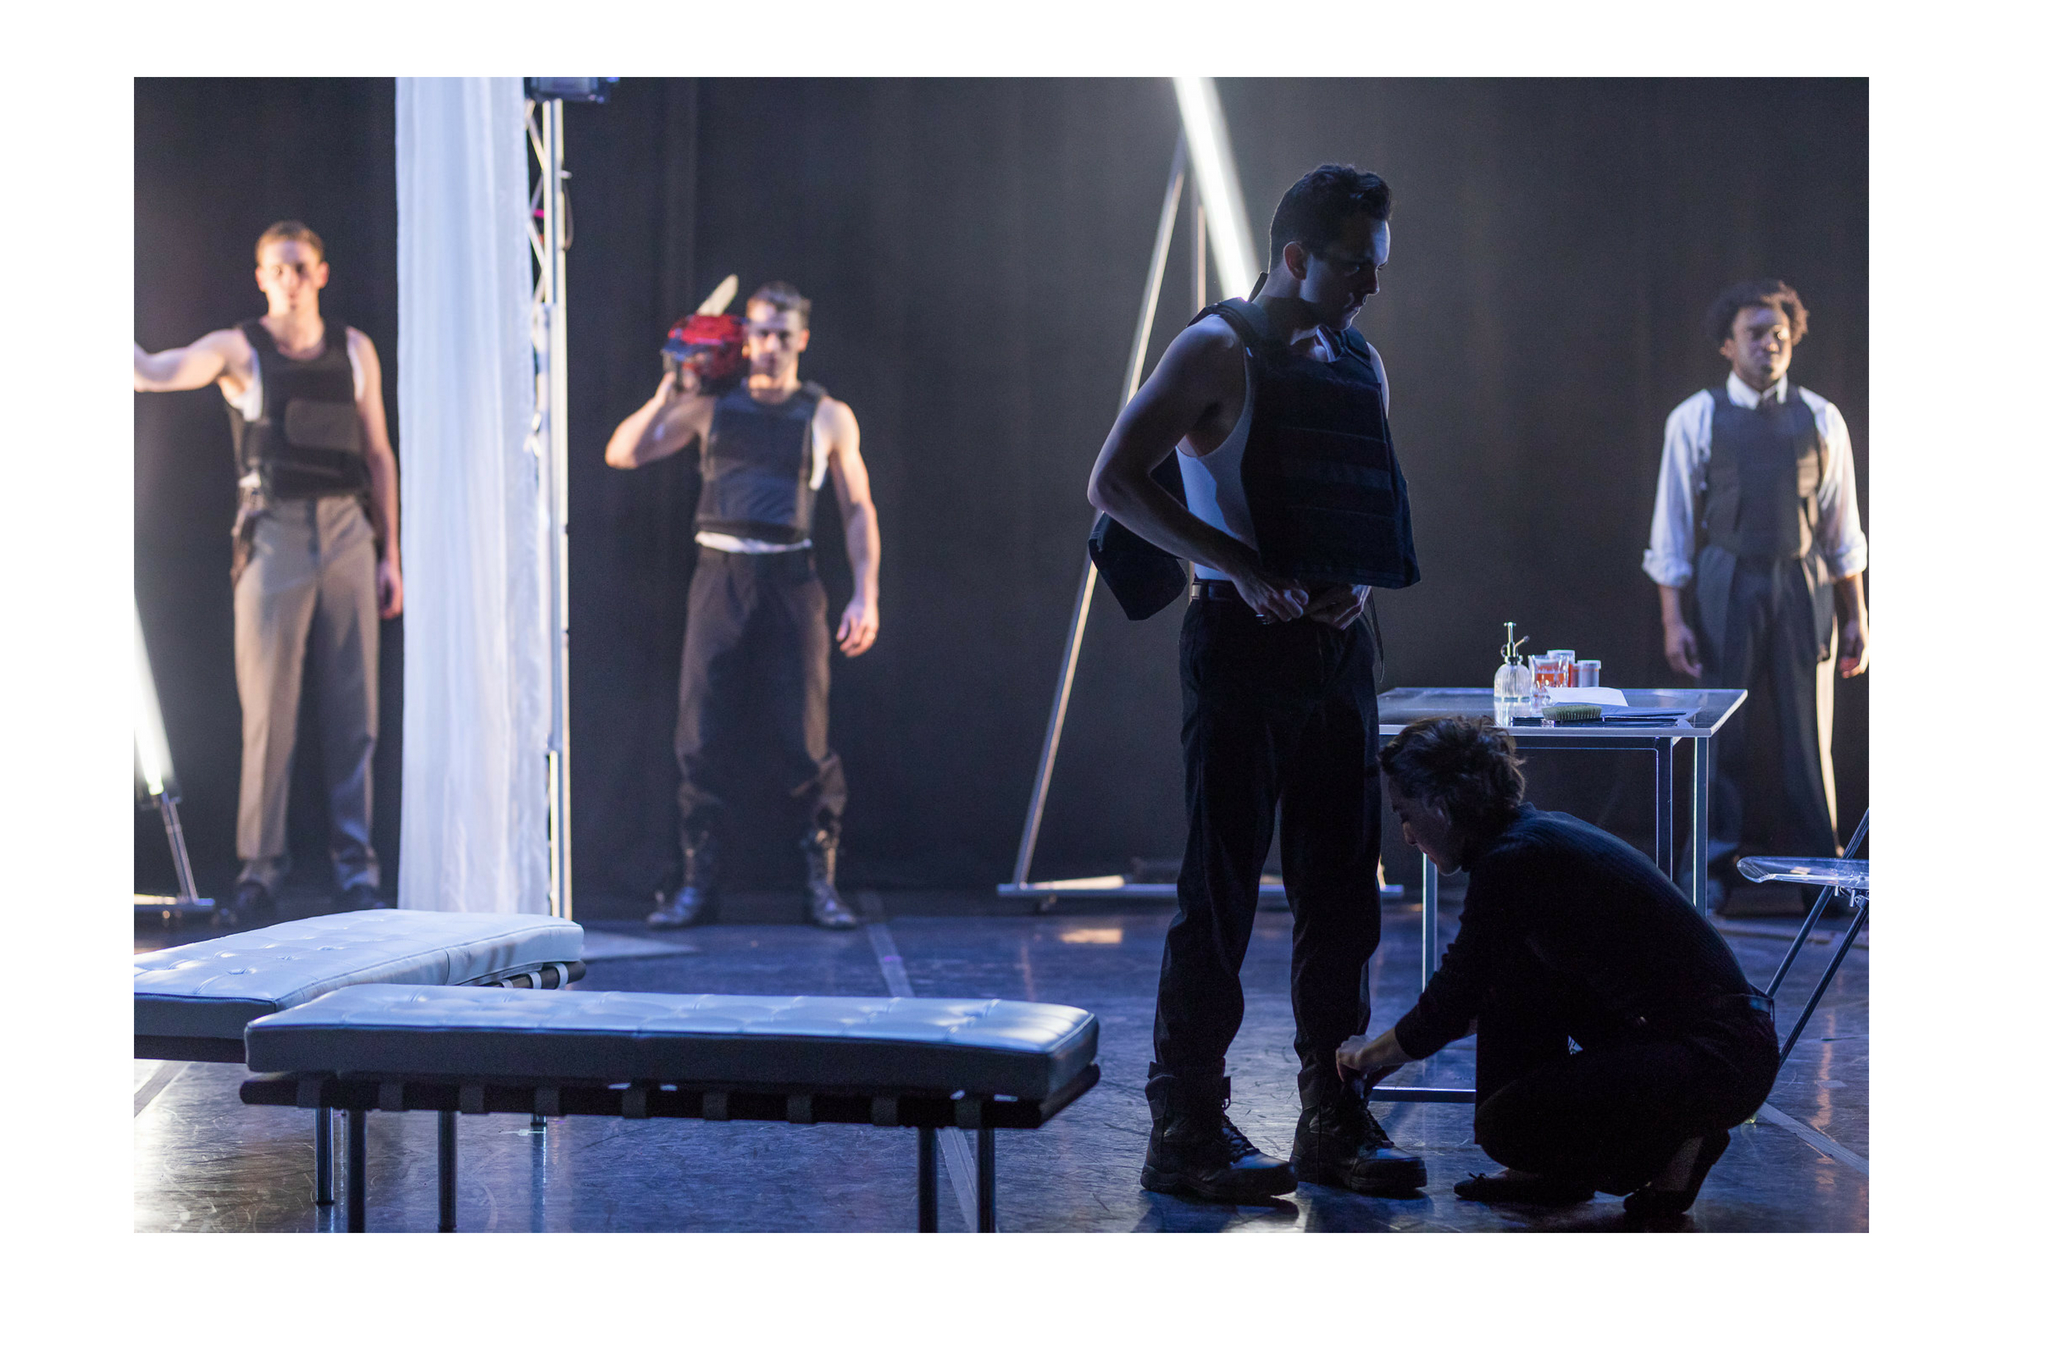 Ross Barron (Ross), Michael Underhill (Macduff), Billy Saunders, Jr. (Macbeth), Susannah Wilson (Seyton), and Tyshon Boone (Malcolm) in Macbeth, CSC2, 2018-Photo by Nile Hawver